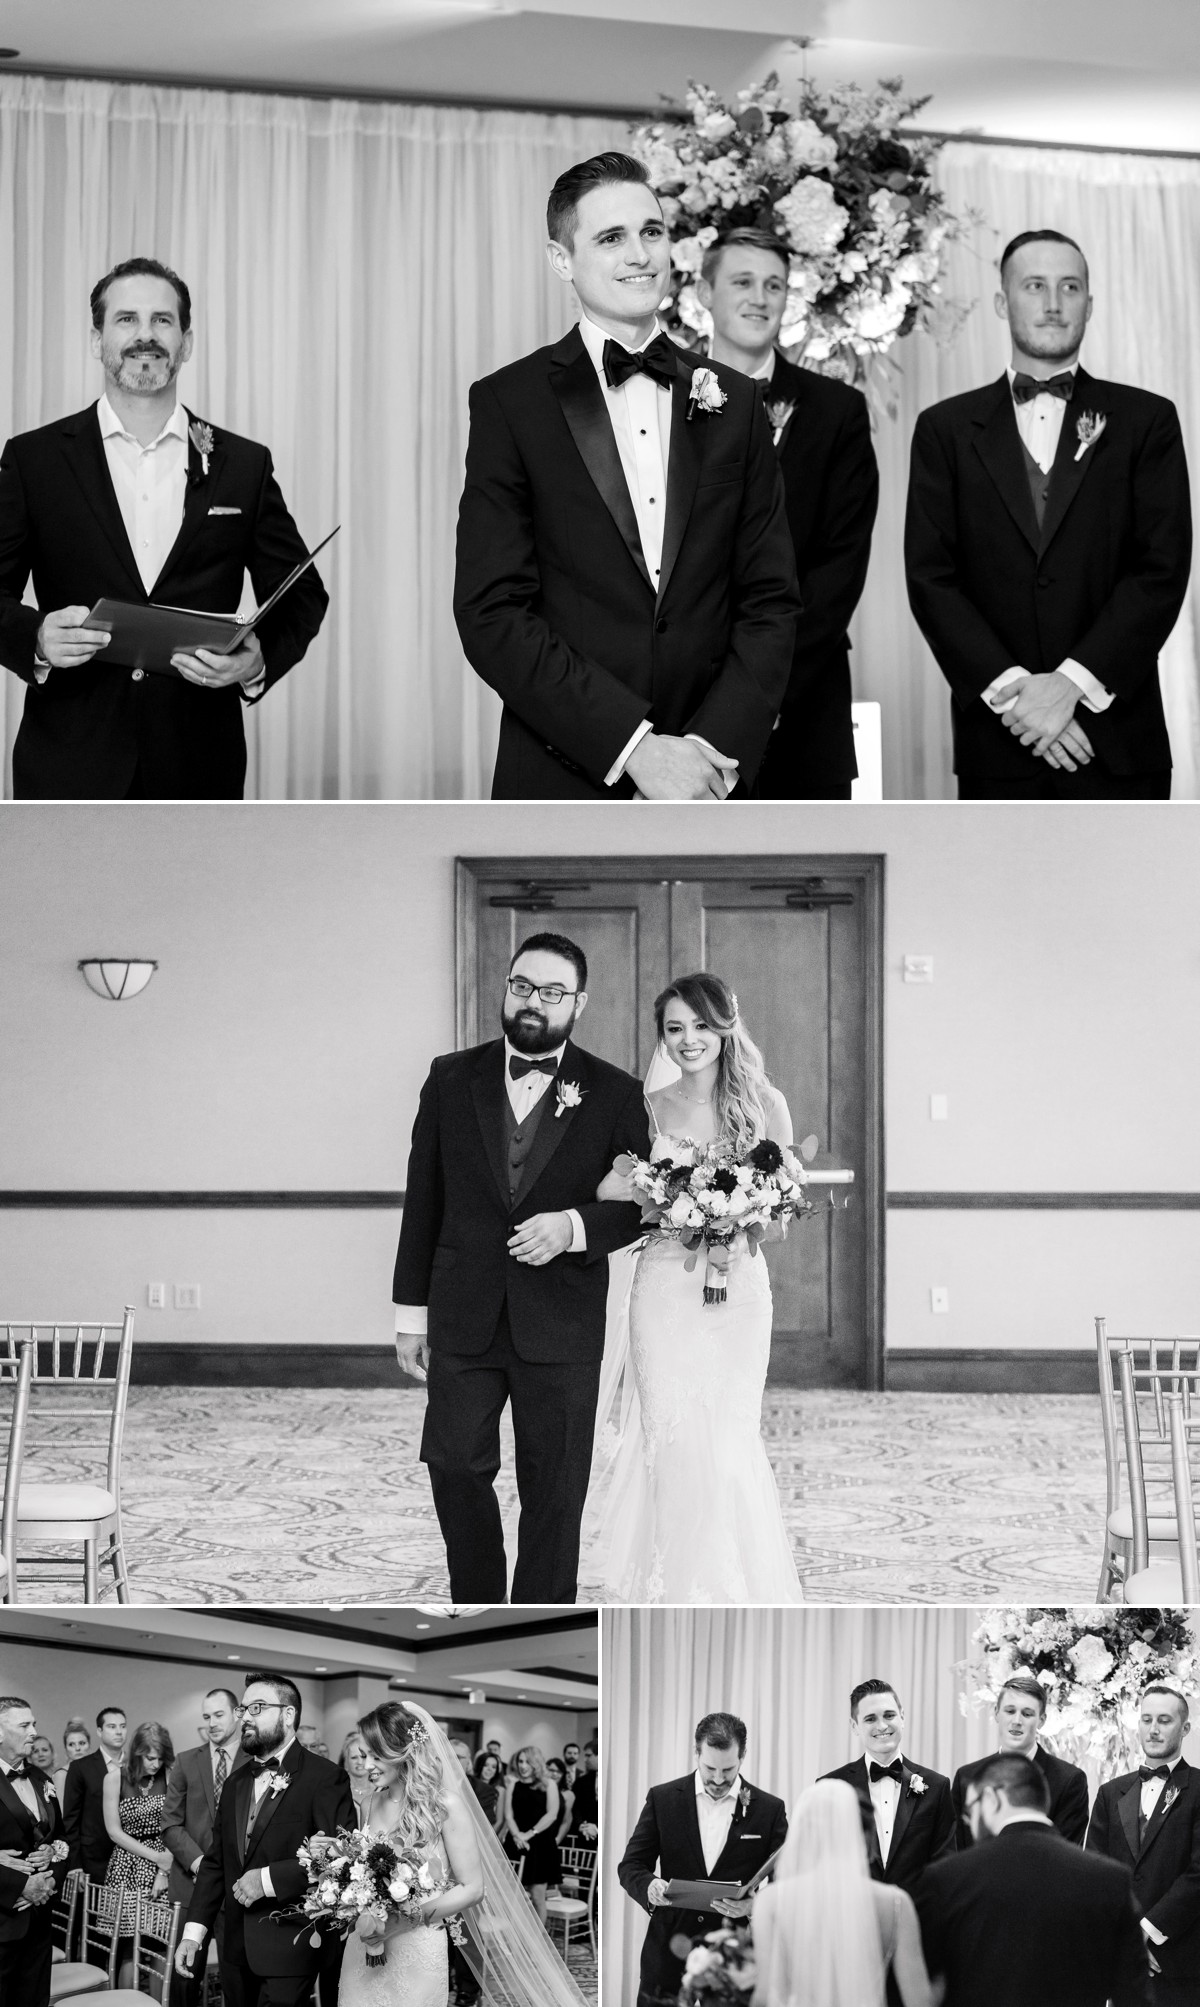 Manor House Wedding at The Houstonian Hotel Ceremony Black and White Bride and Groom